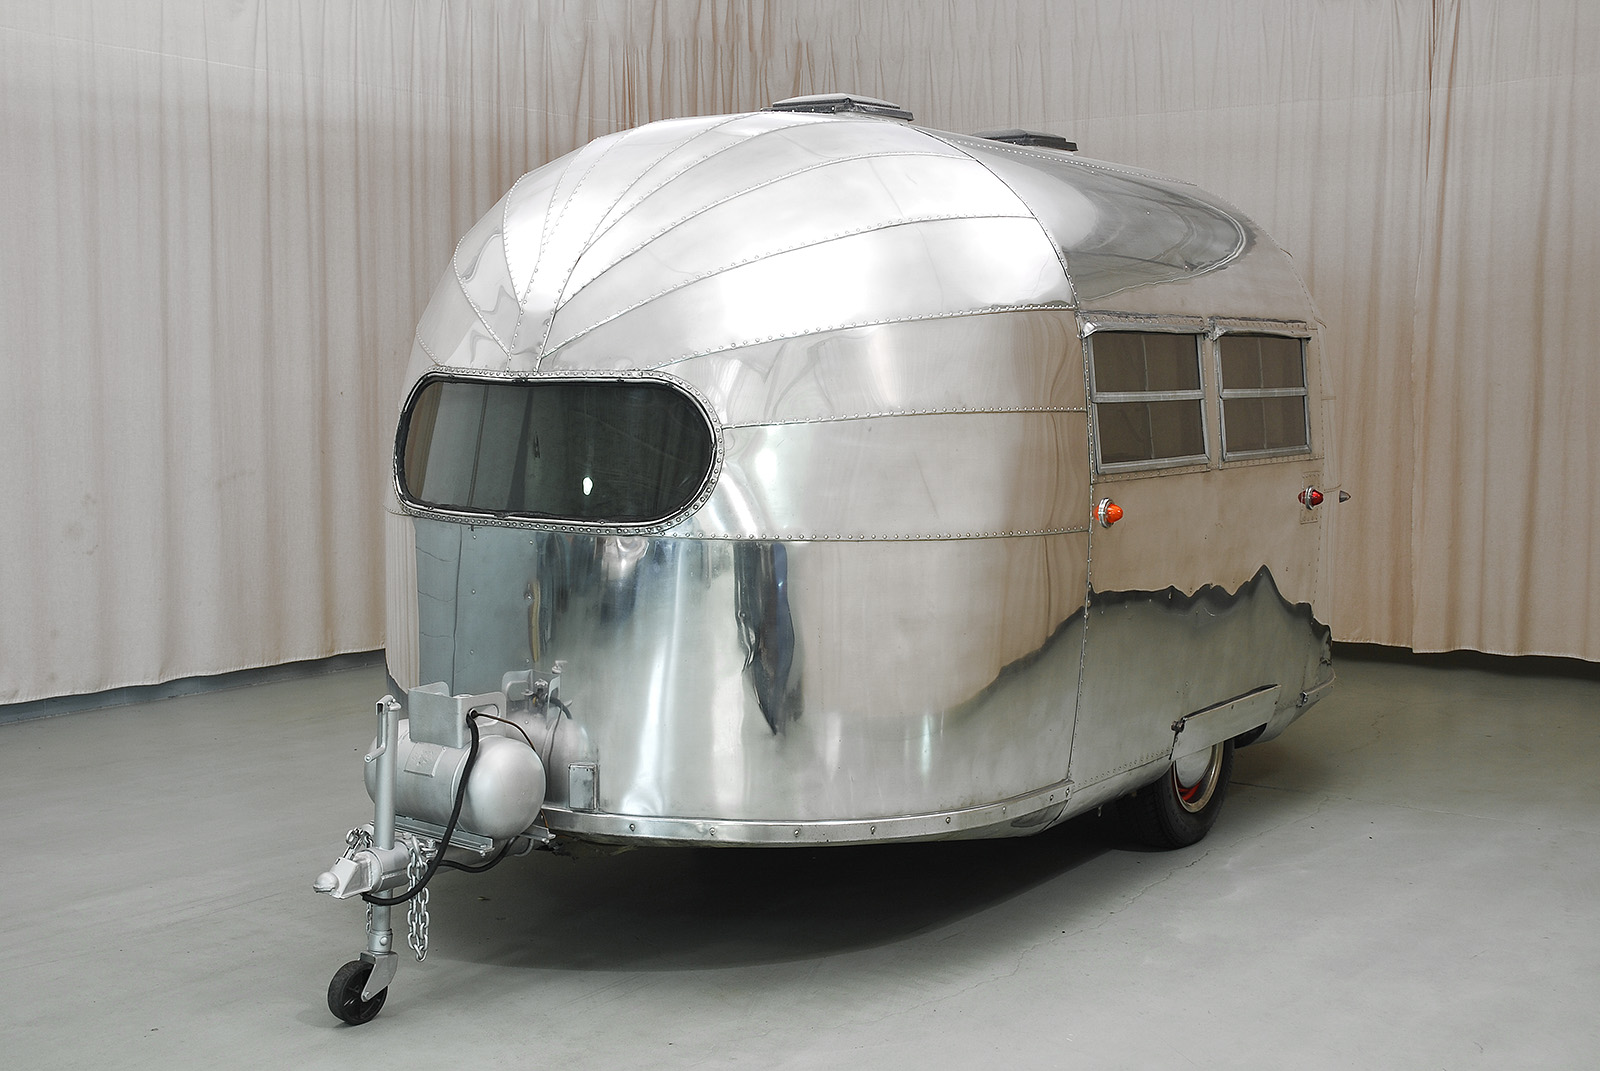 1948 airstream wee wind trailer hyman ltd classic cars